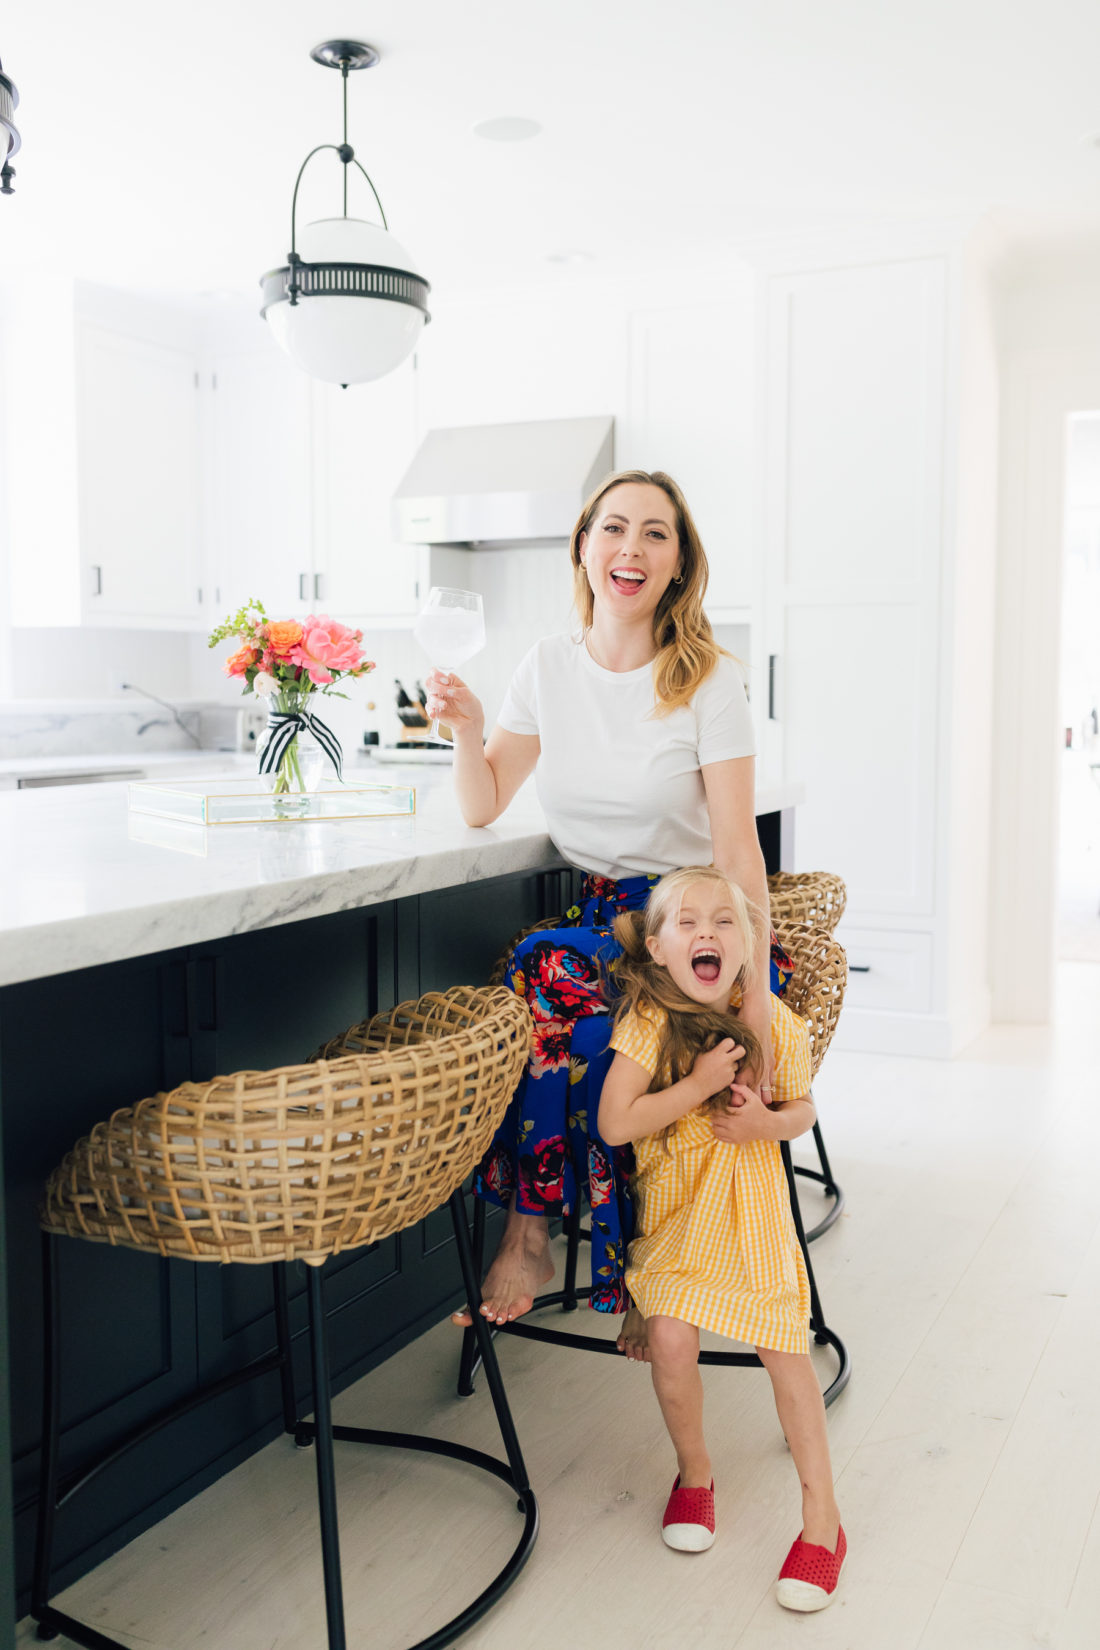 Eva Amurri Martino wears a crisp white t-shirt and a colorful skirt with her daughter Marlowe in her kitchen in Connecticut